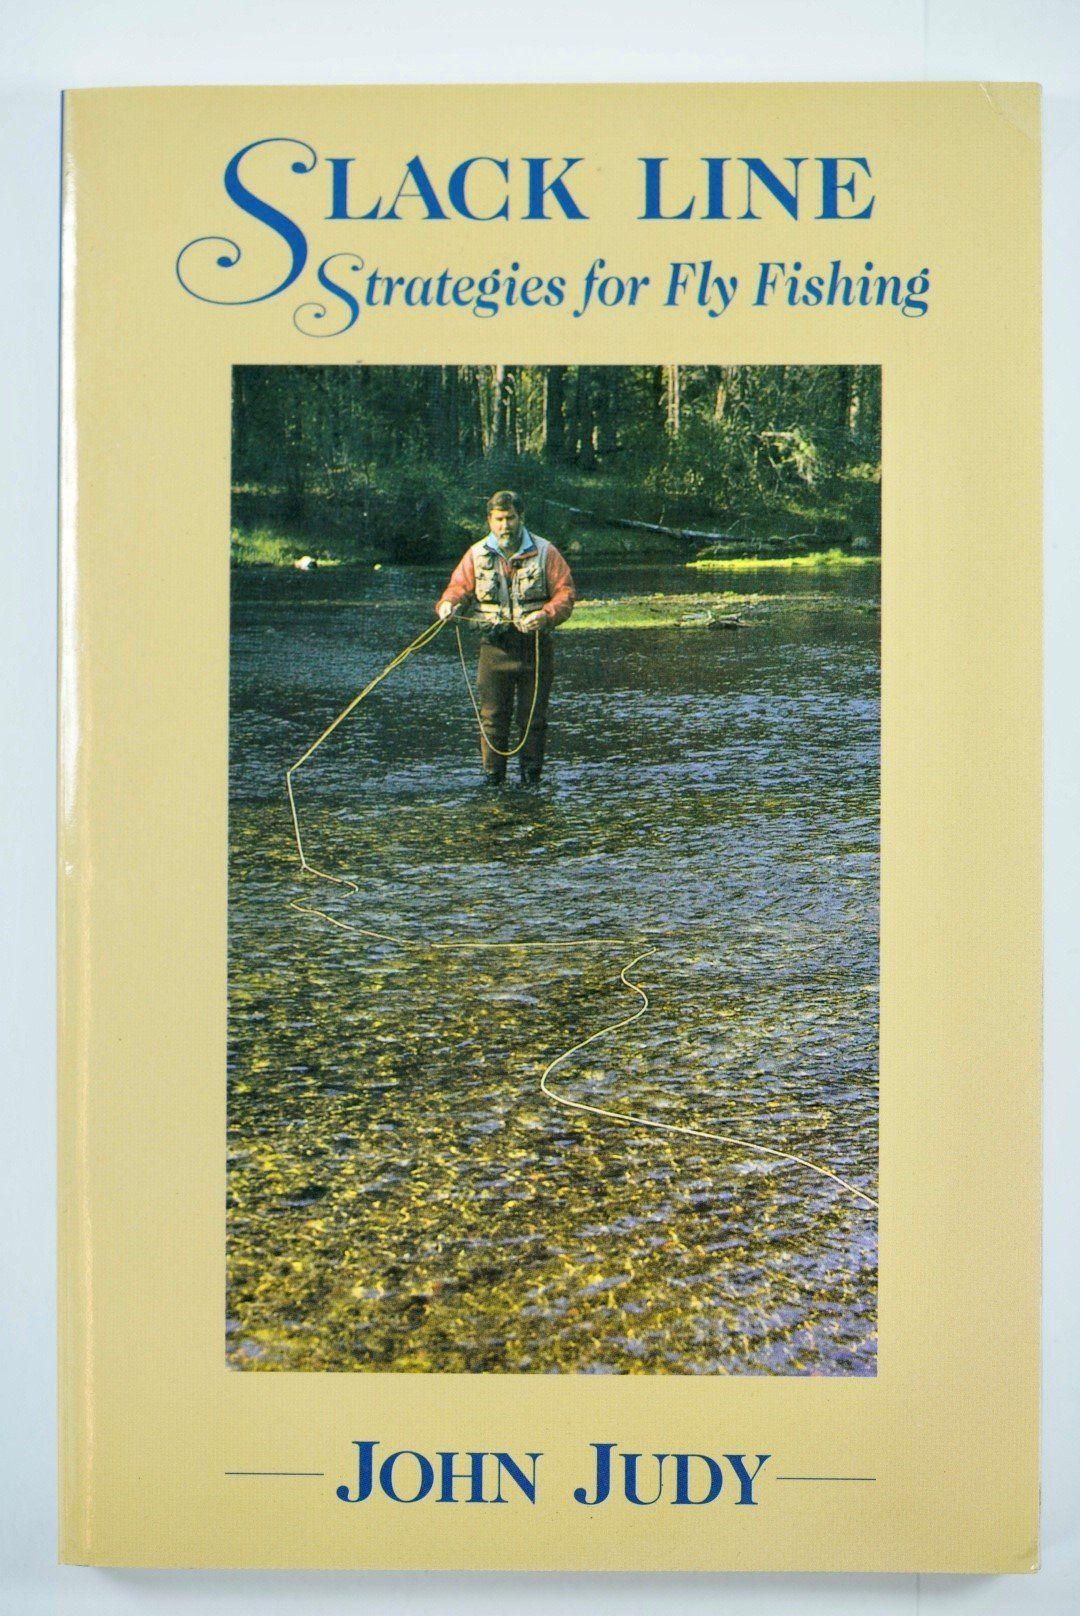 Slack Line Strategies For Fly Fishing By John Judy Books John Judy